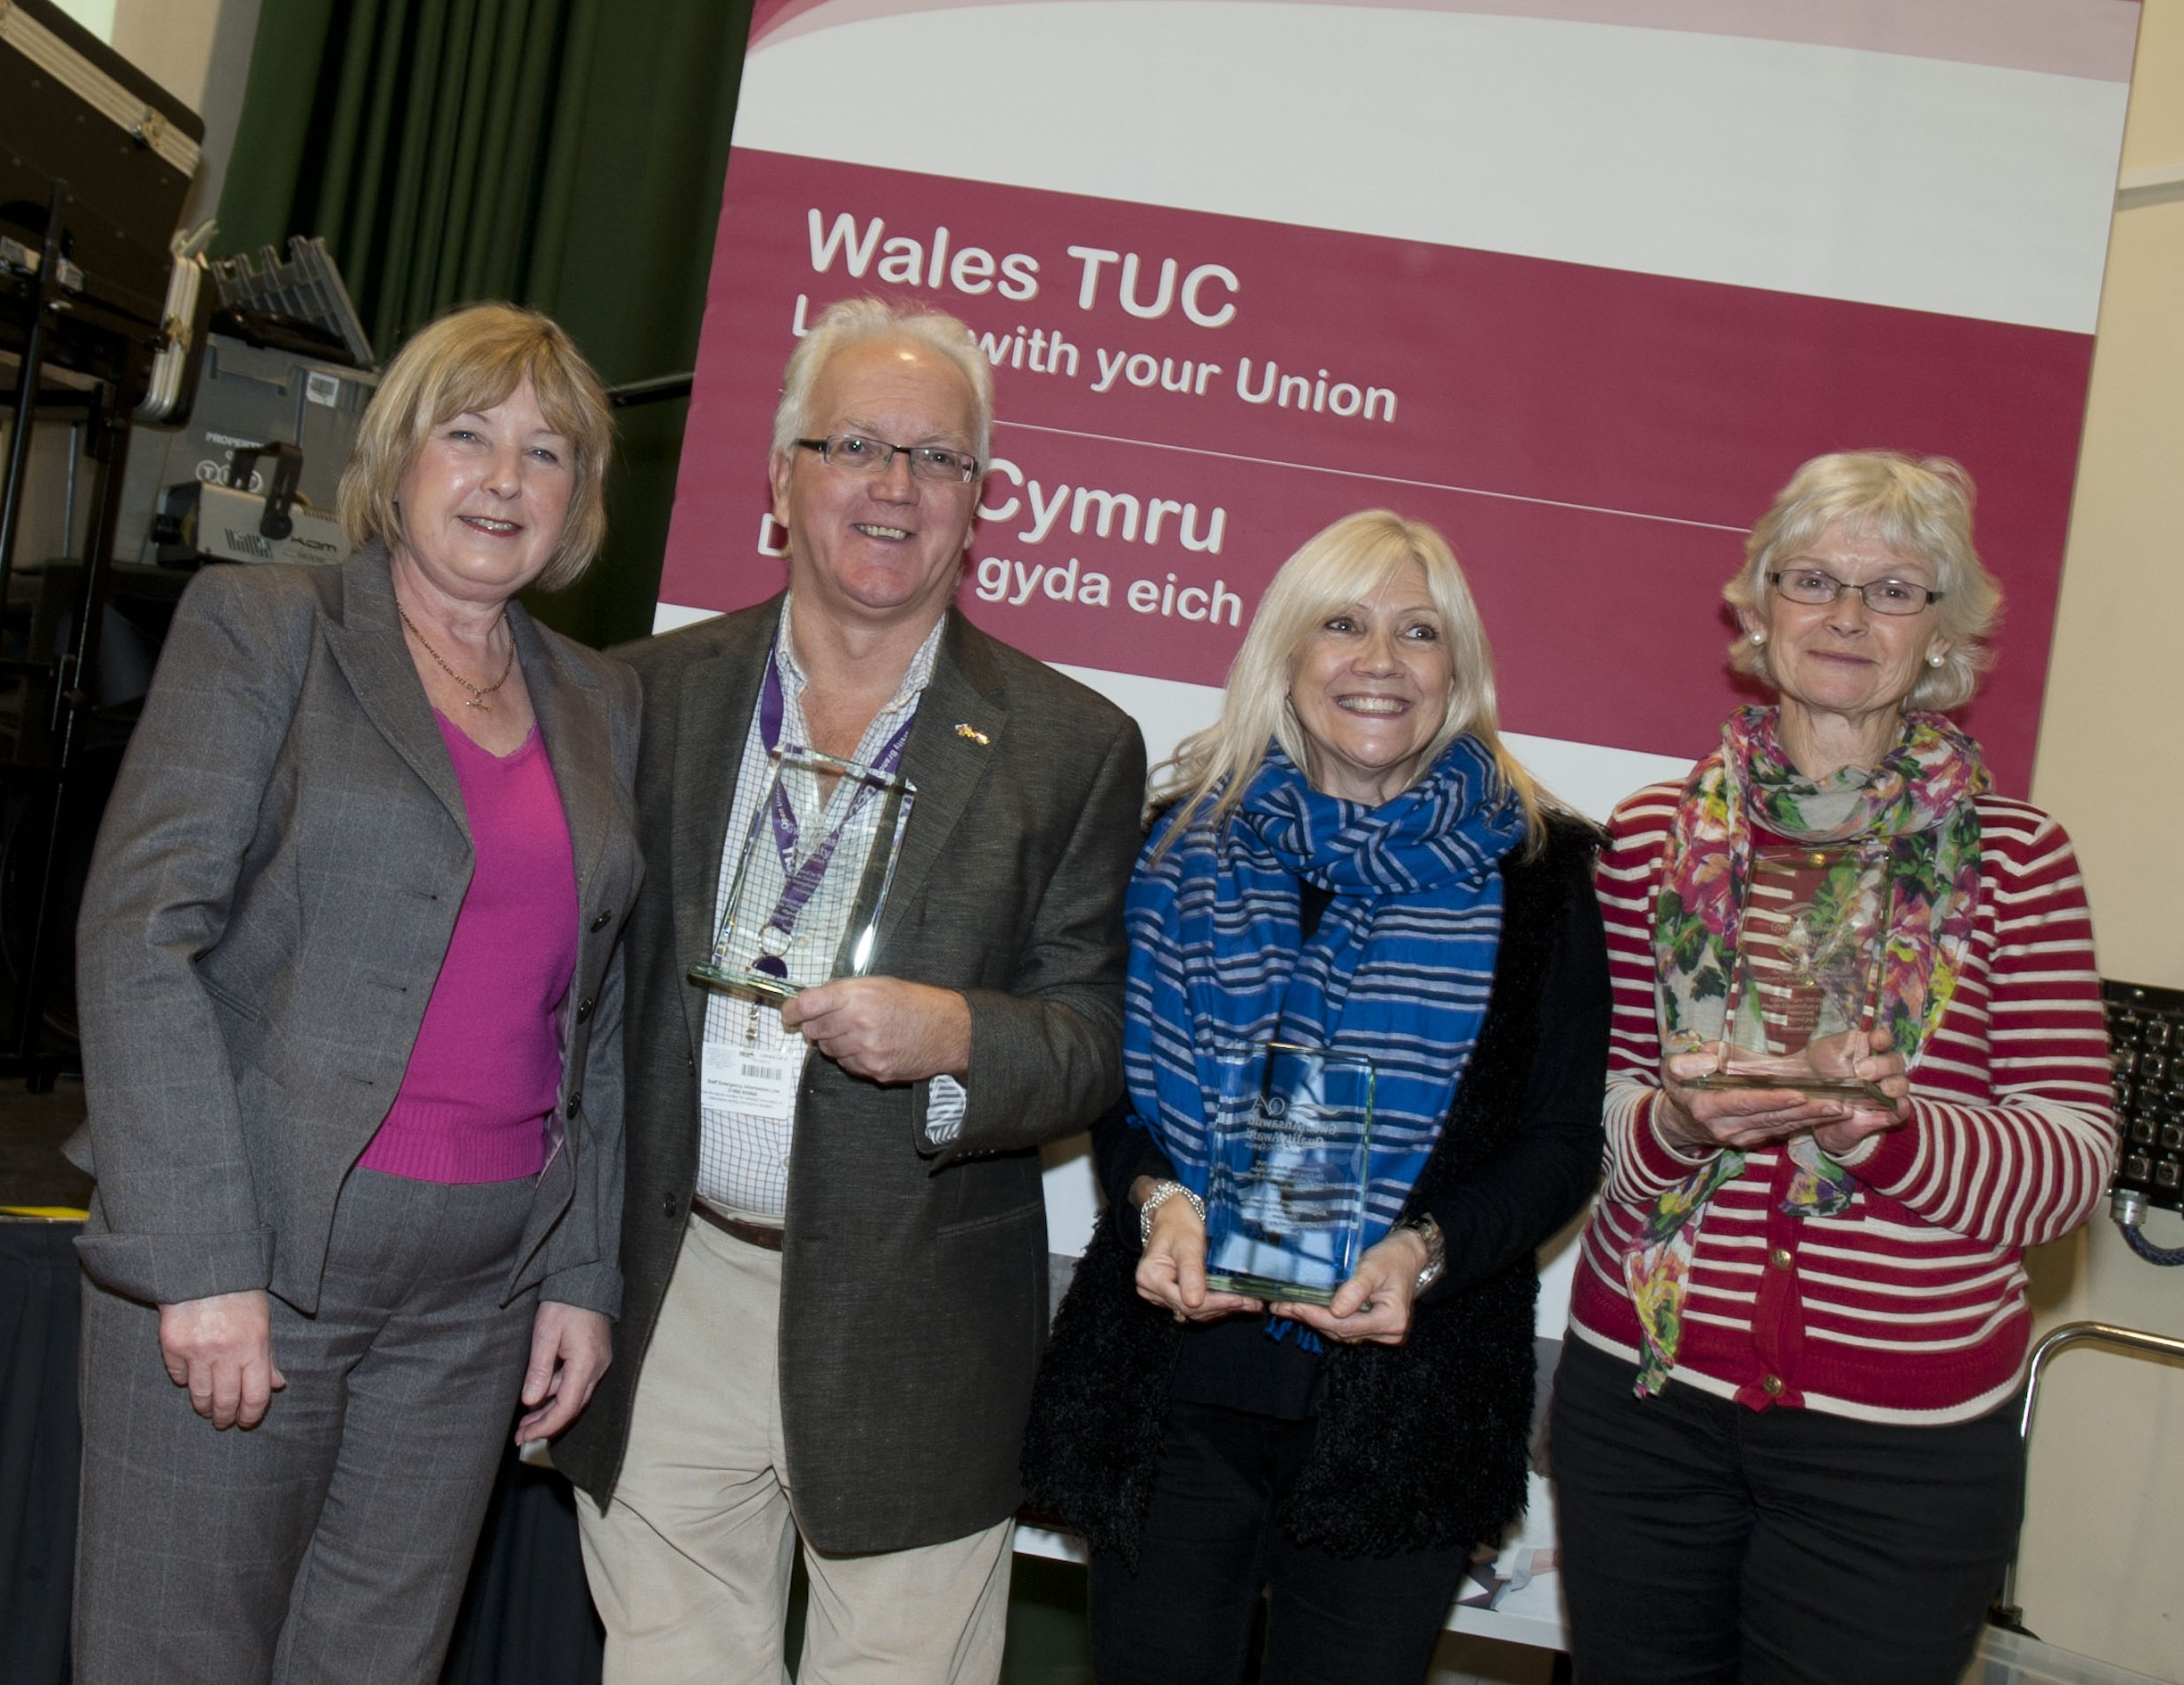 (from left to right) Julie Cook from Wales TUC with Kevin Pascoe, Jos Andrews and Ruth Brooks from The Open University in Wales